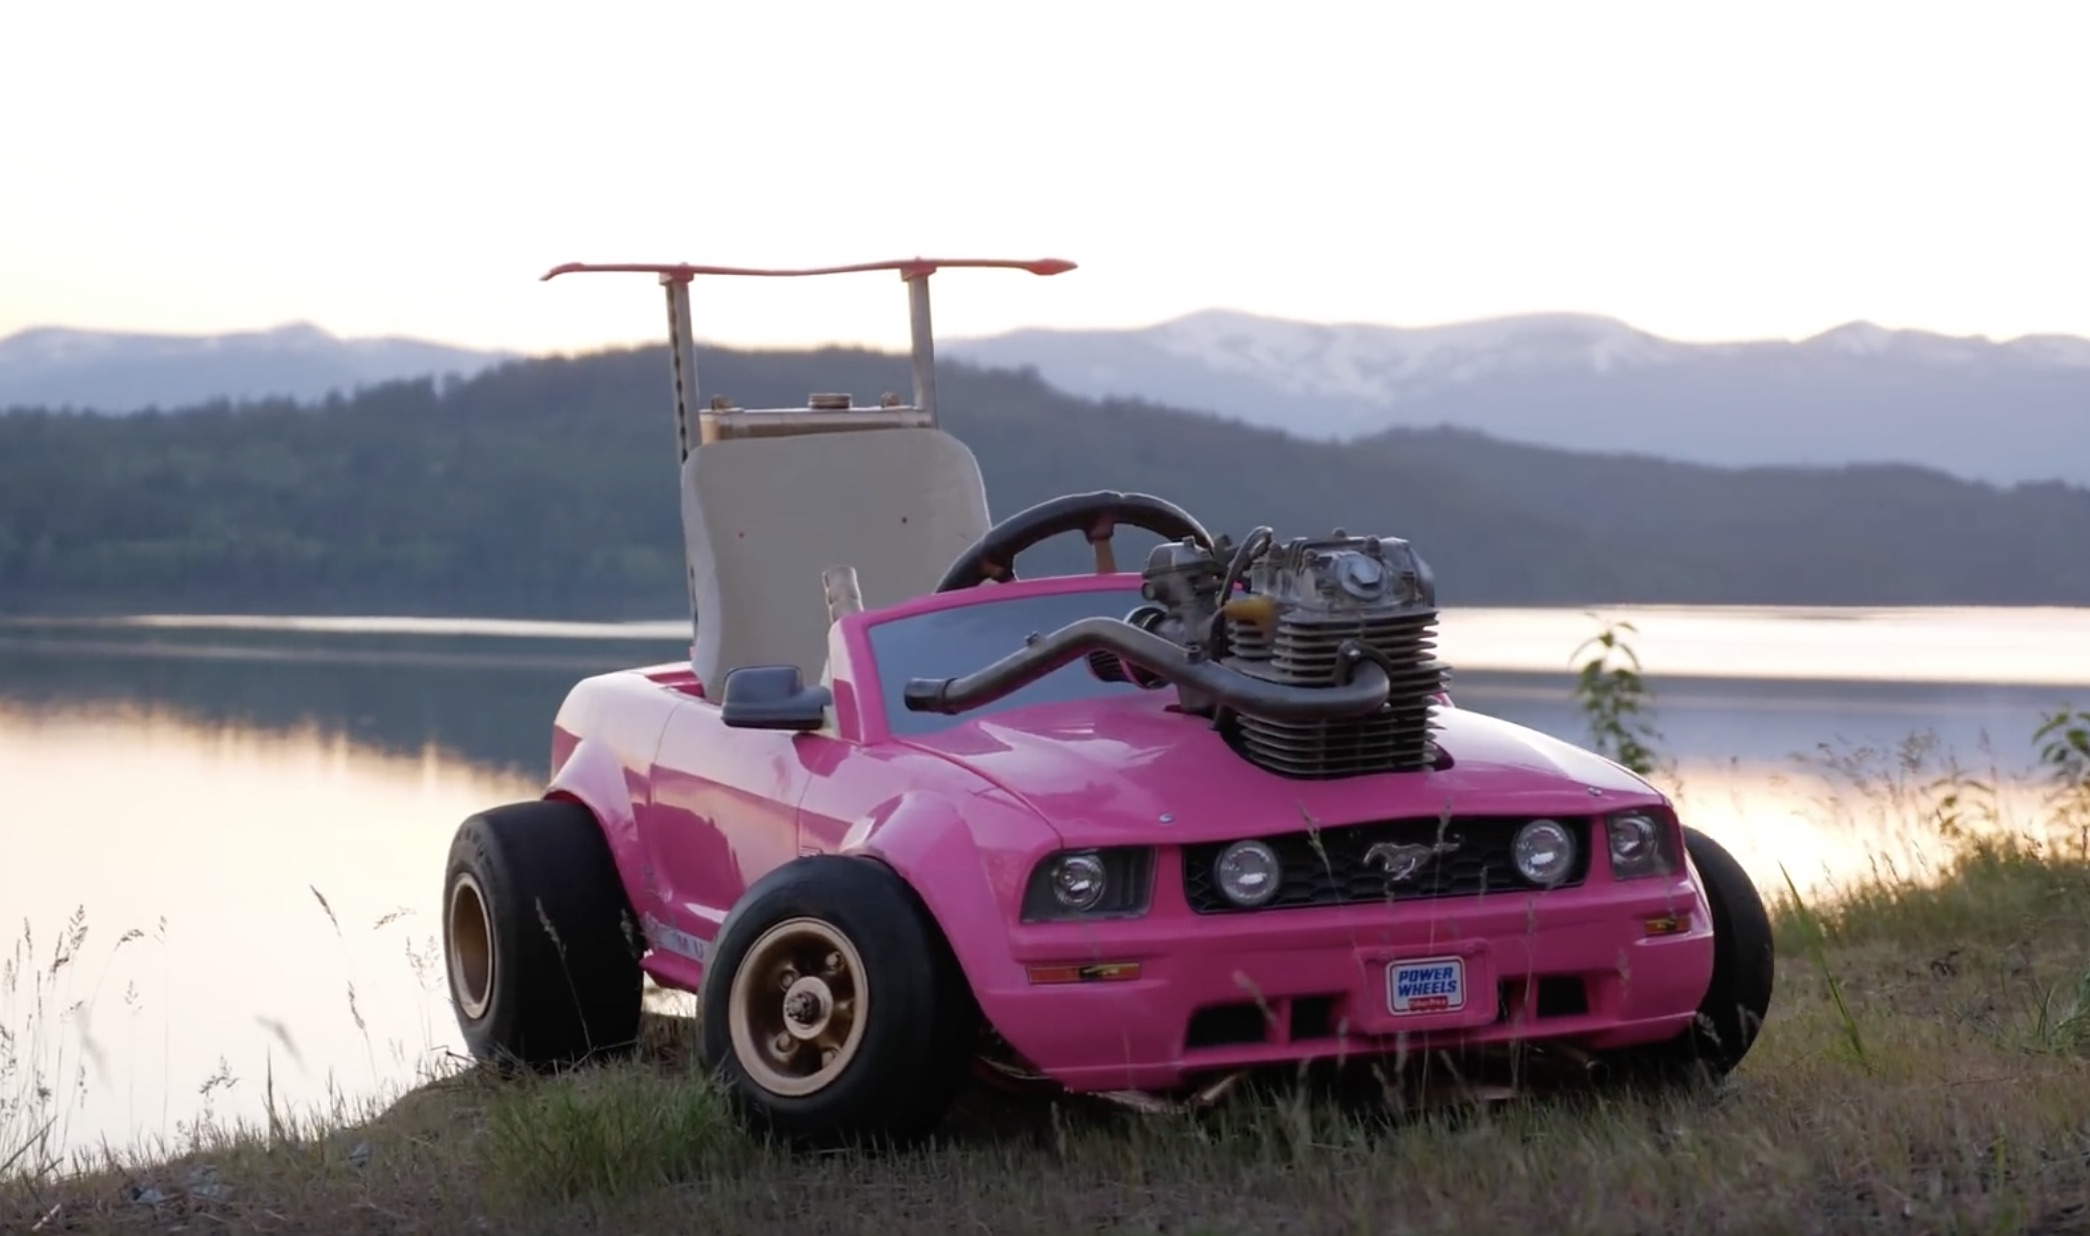 Concentrated Formula: This Motorcycle-Engined Power Wheels Mustang Will Kill You Twice As Fast!